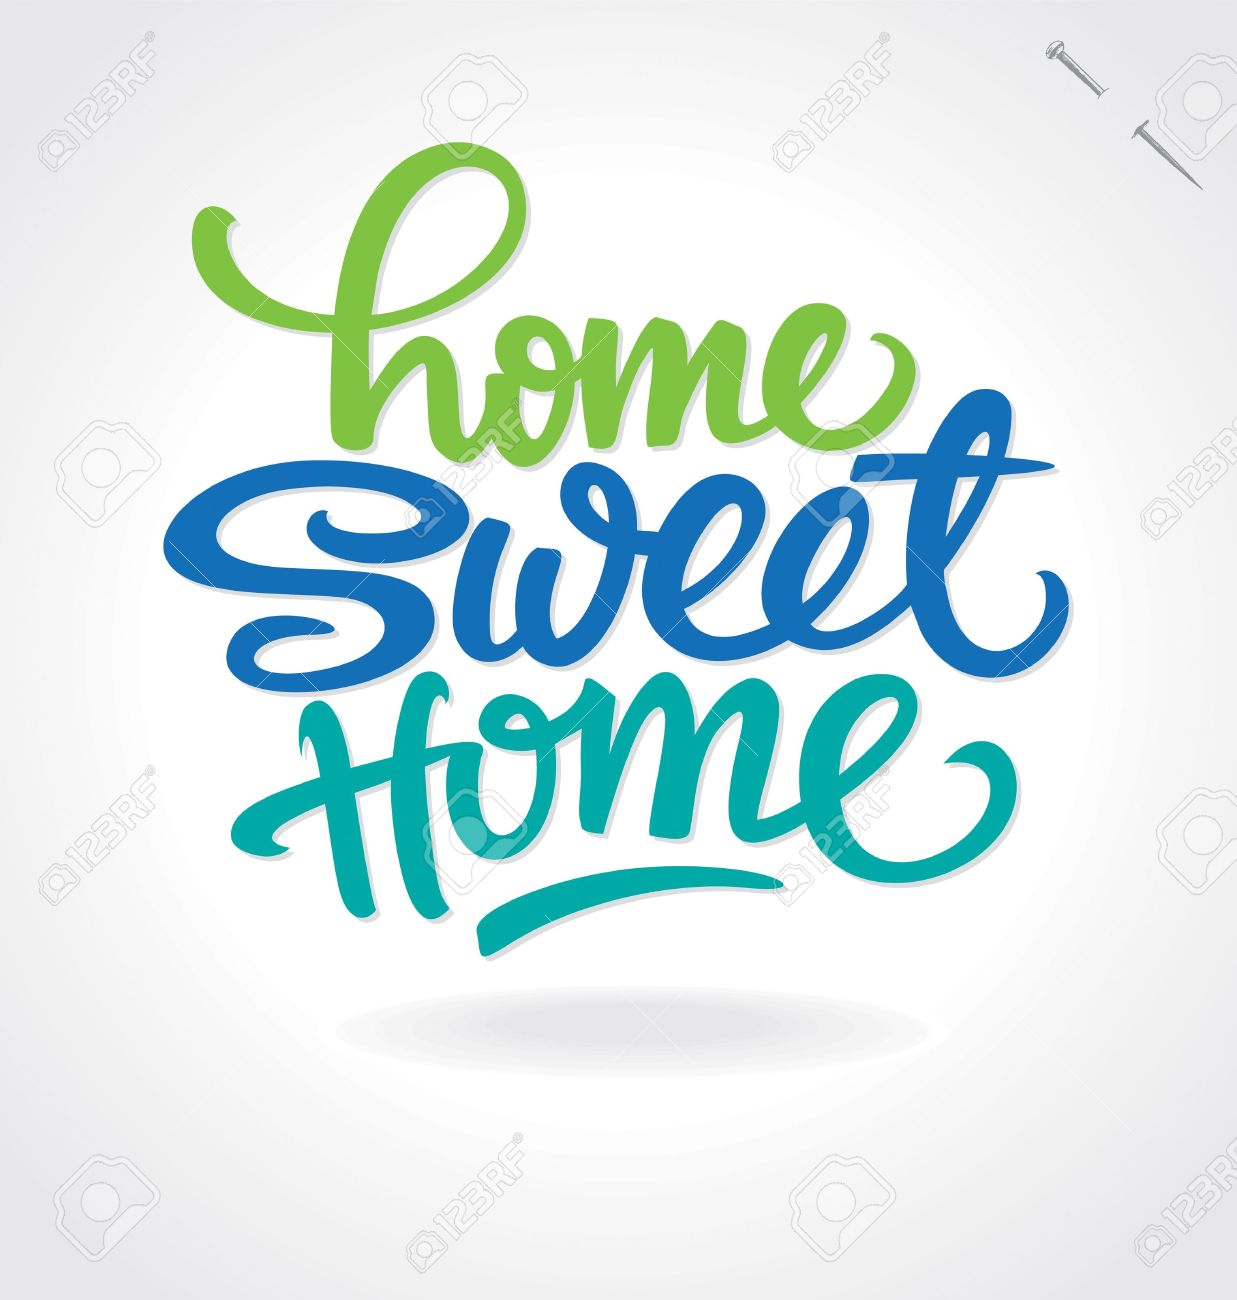 15815 Home Sweet Home Cliparts Stock Vector And Royalty Free